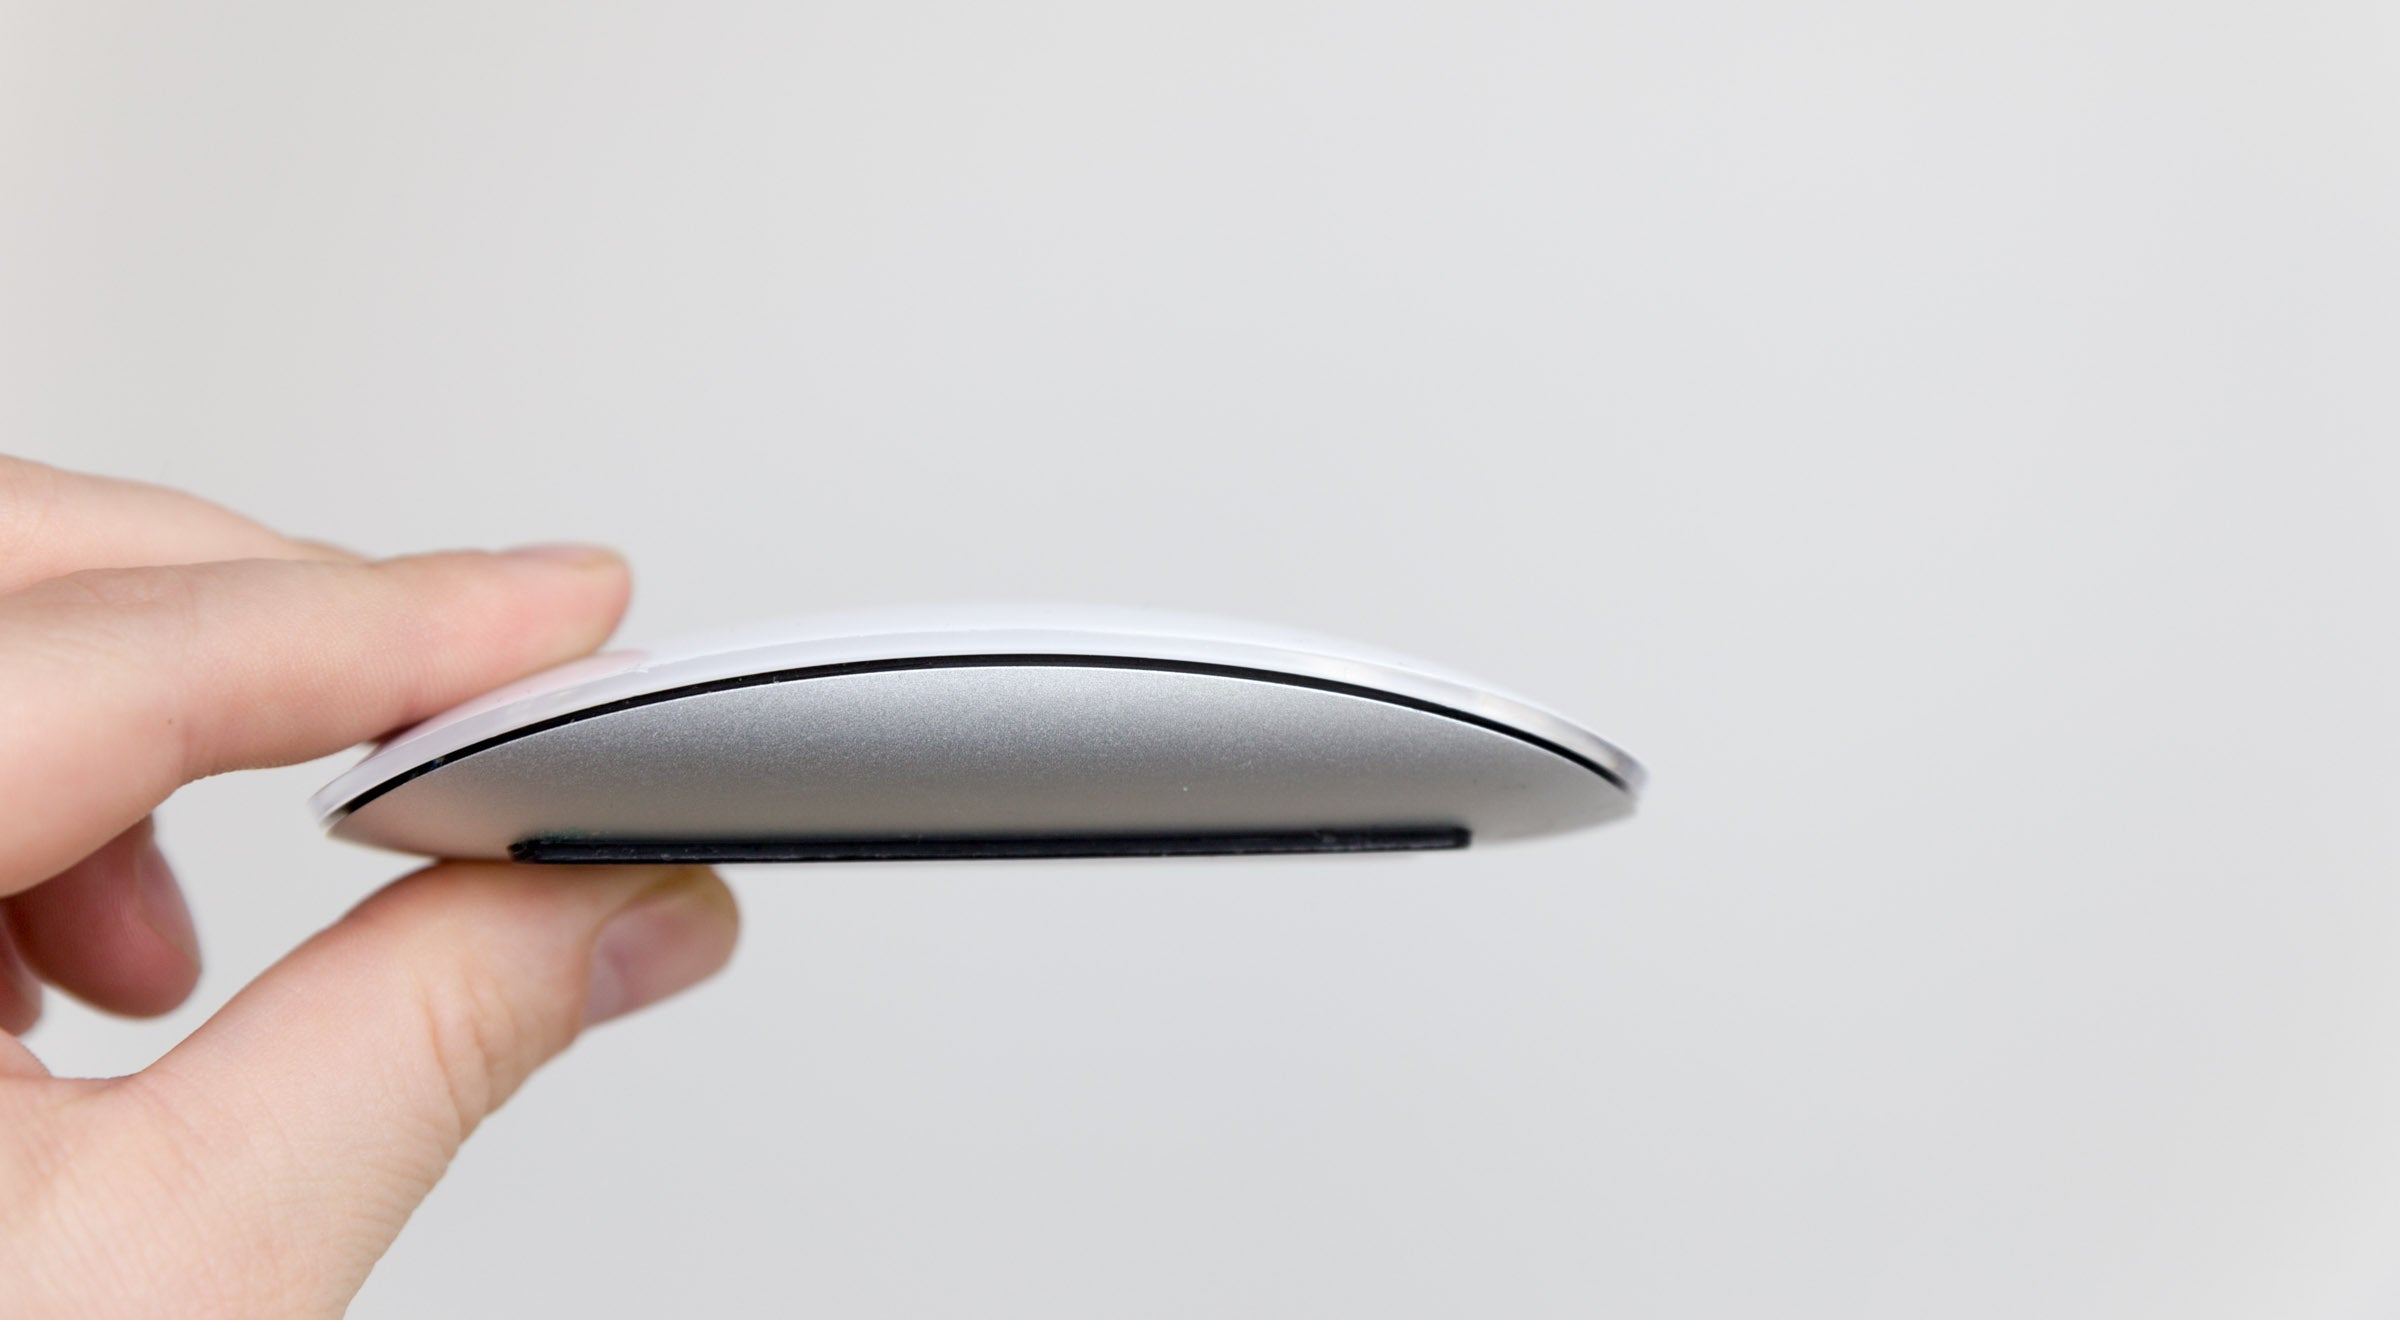 Magicgrips For Magic Mouse 1 2 Elevationlab